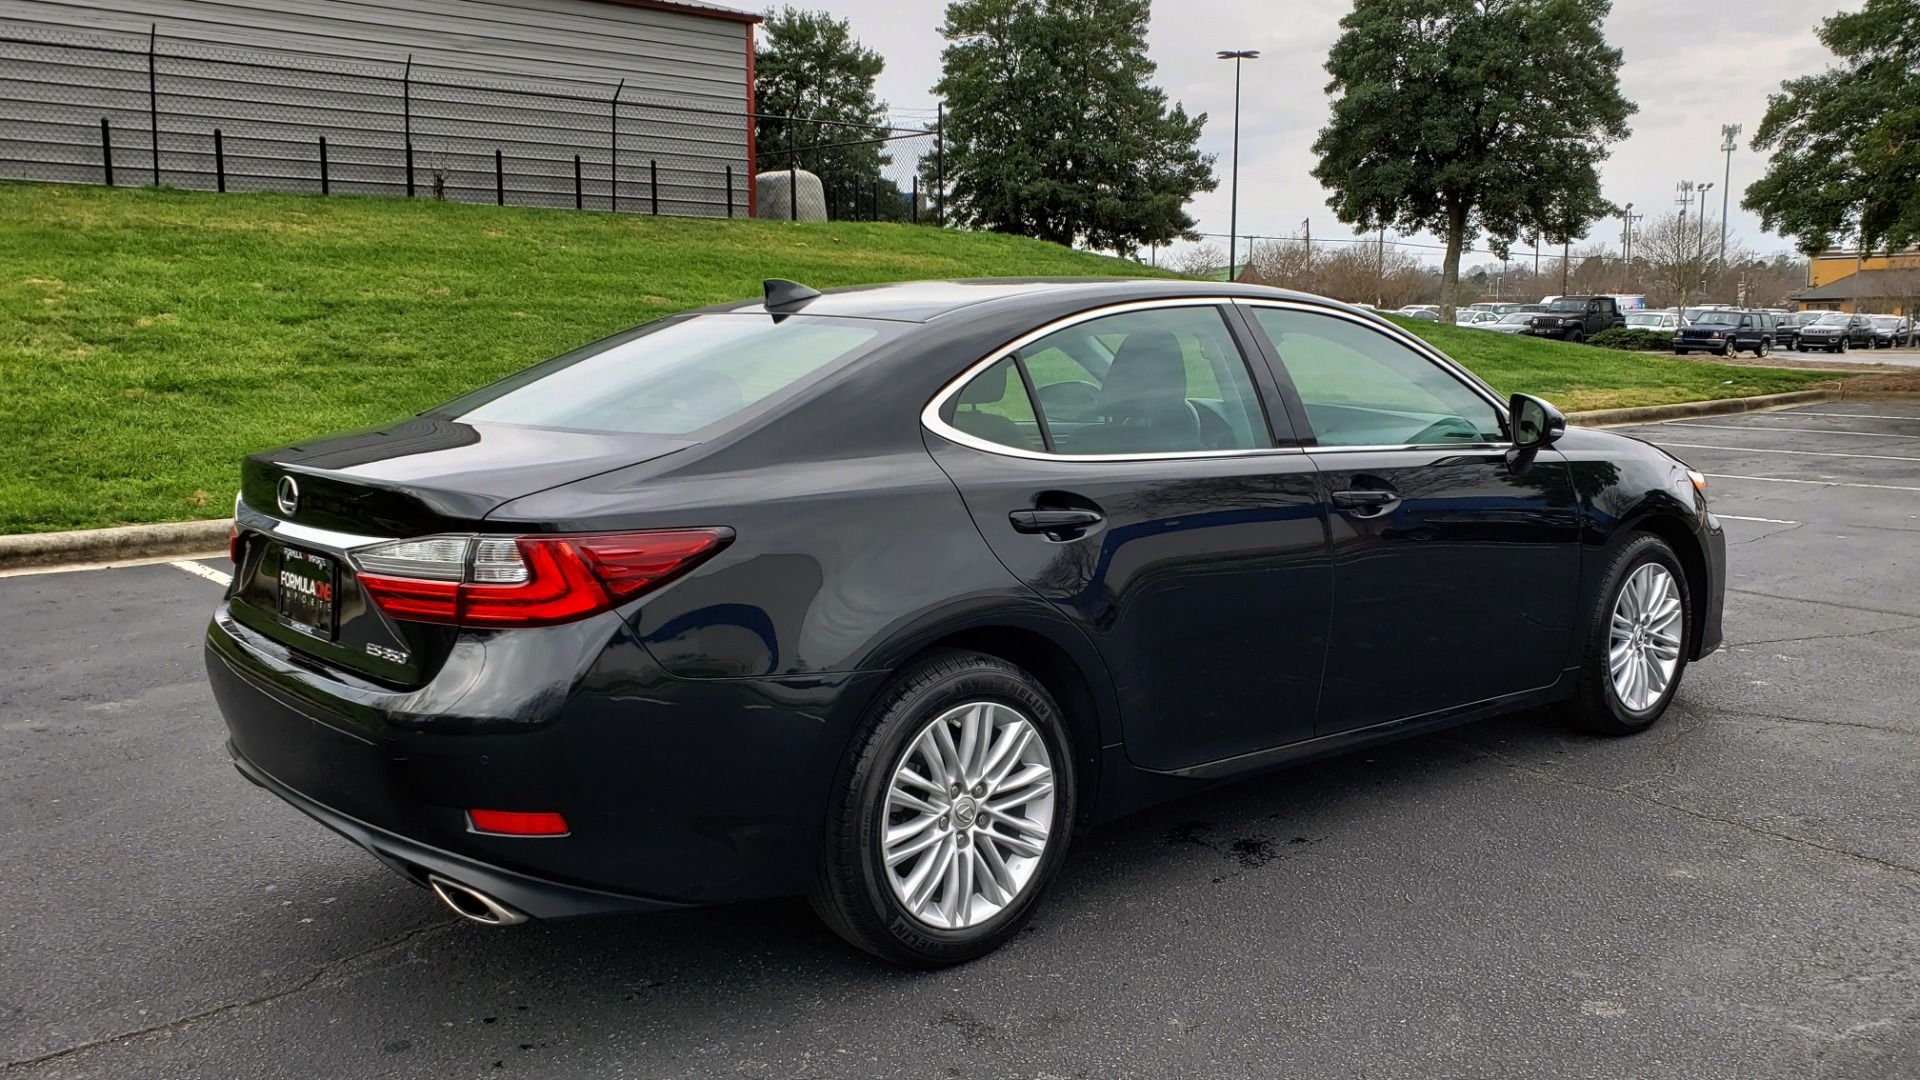 Used 2017 Lexus ES 350 PREMIUM / SUNROOF / PARK ASST / BSM / VENT SEATS / REARVIEW for sale Sold at Formula Imports in Charlotte NC 28227 6